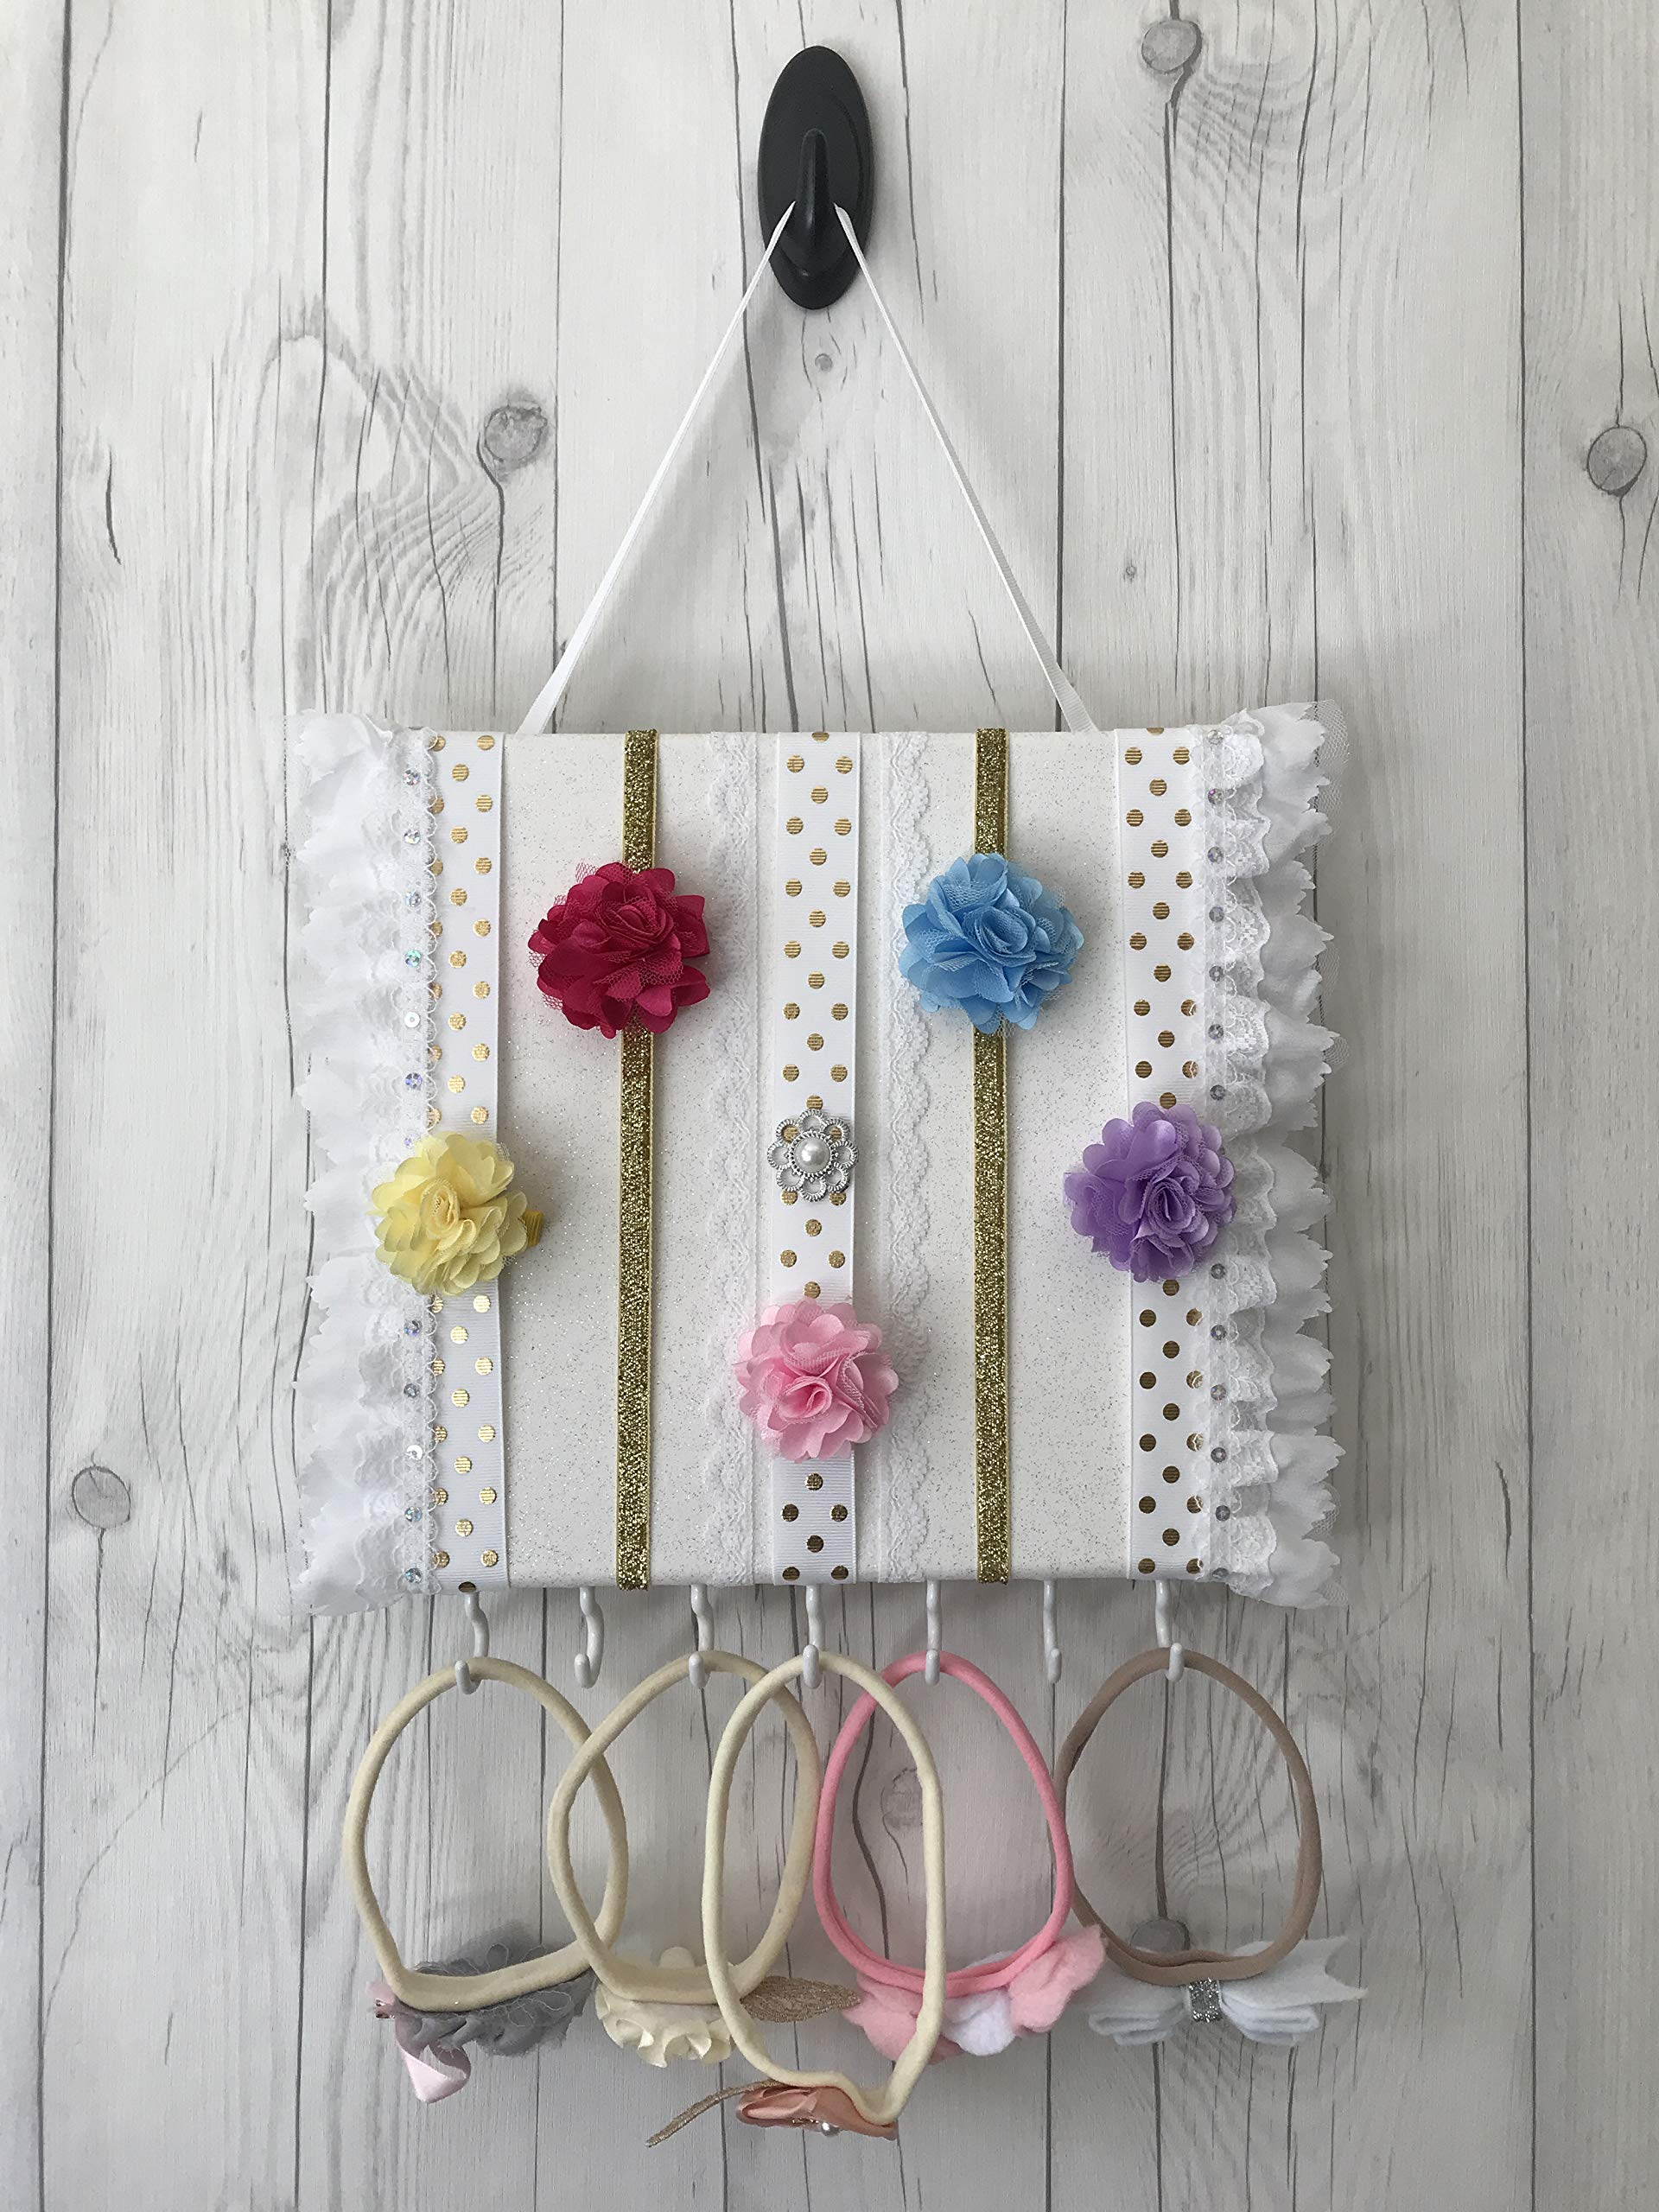 Bead&Cord 10''x10'' Canvas Hair Bow and Baby Elastic Headband Organizer (White & Lace Gift Set) by Bead&Cord (Image #3)